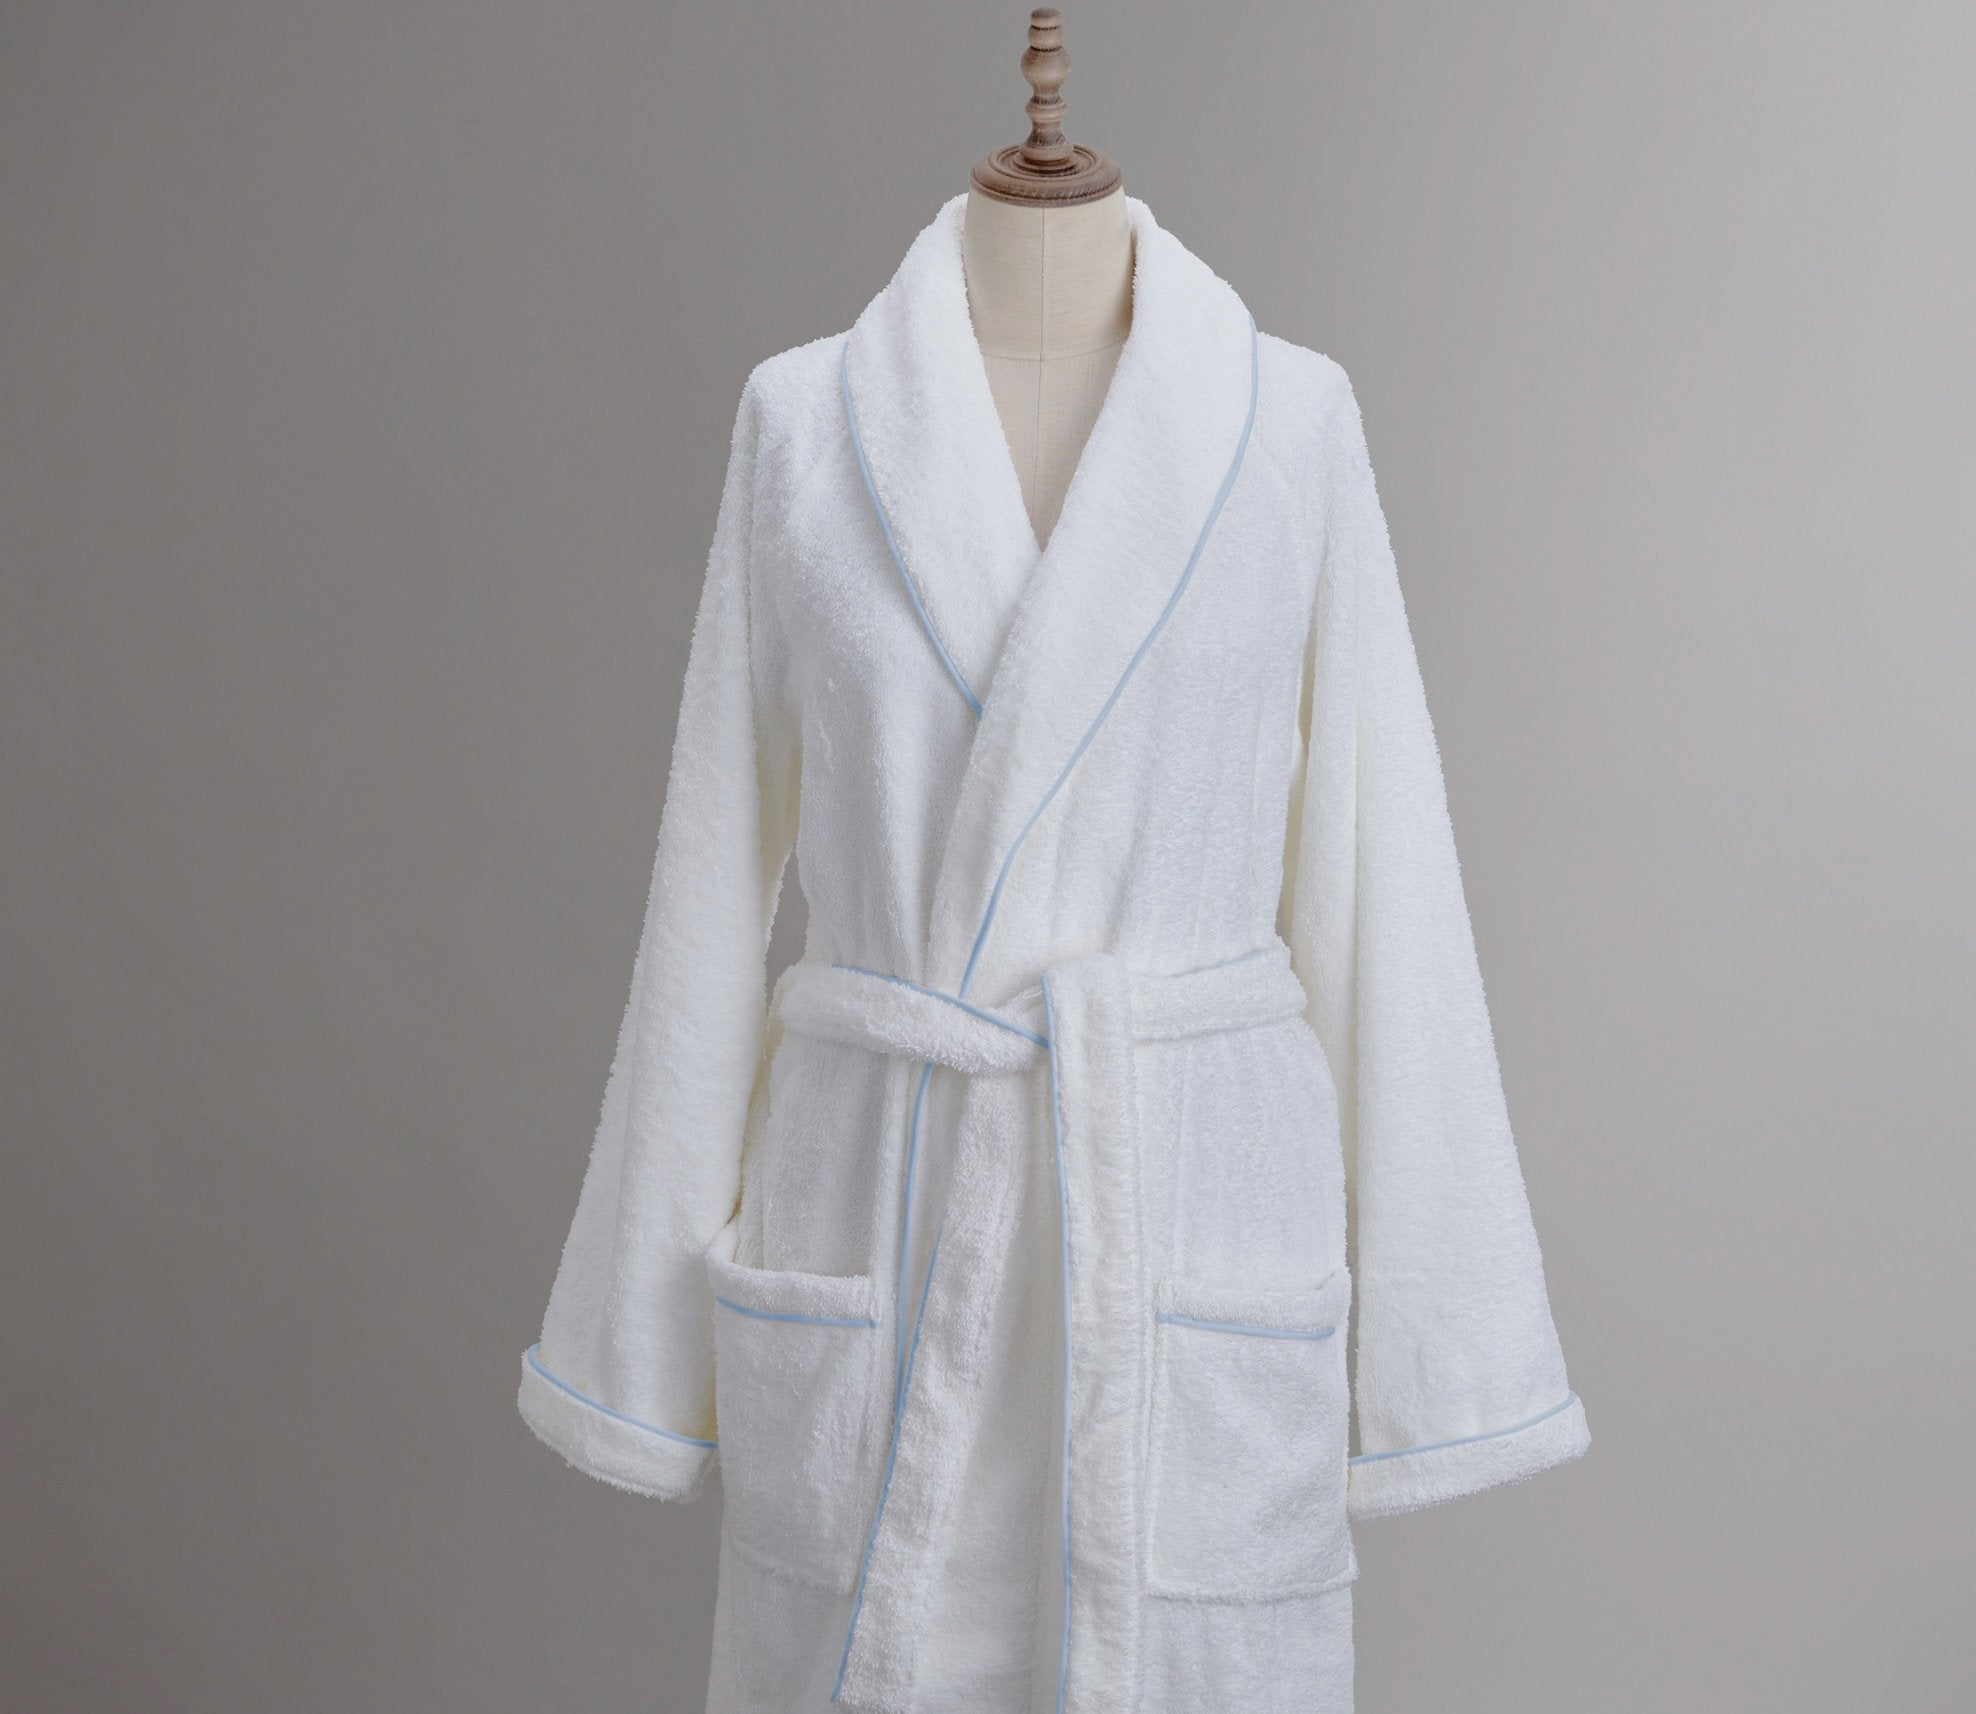 Cairo Robe White Custom Medium Product Image 1